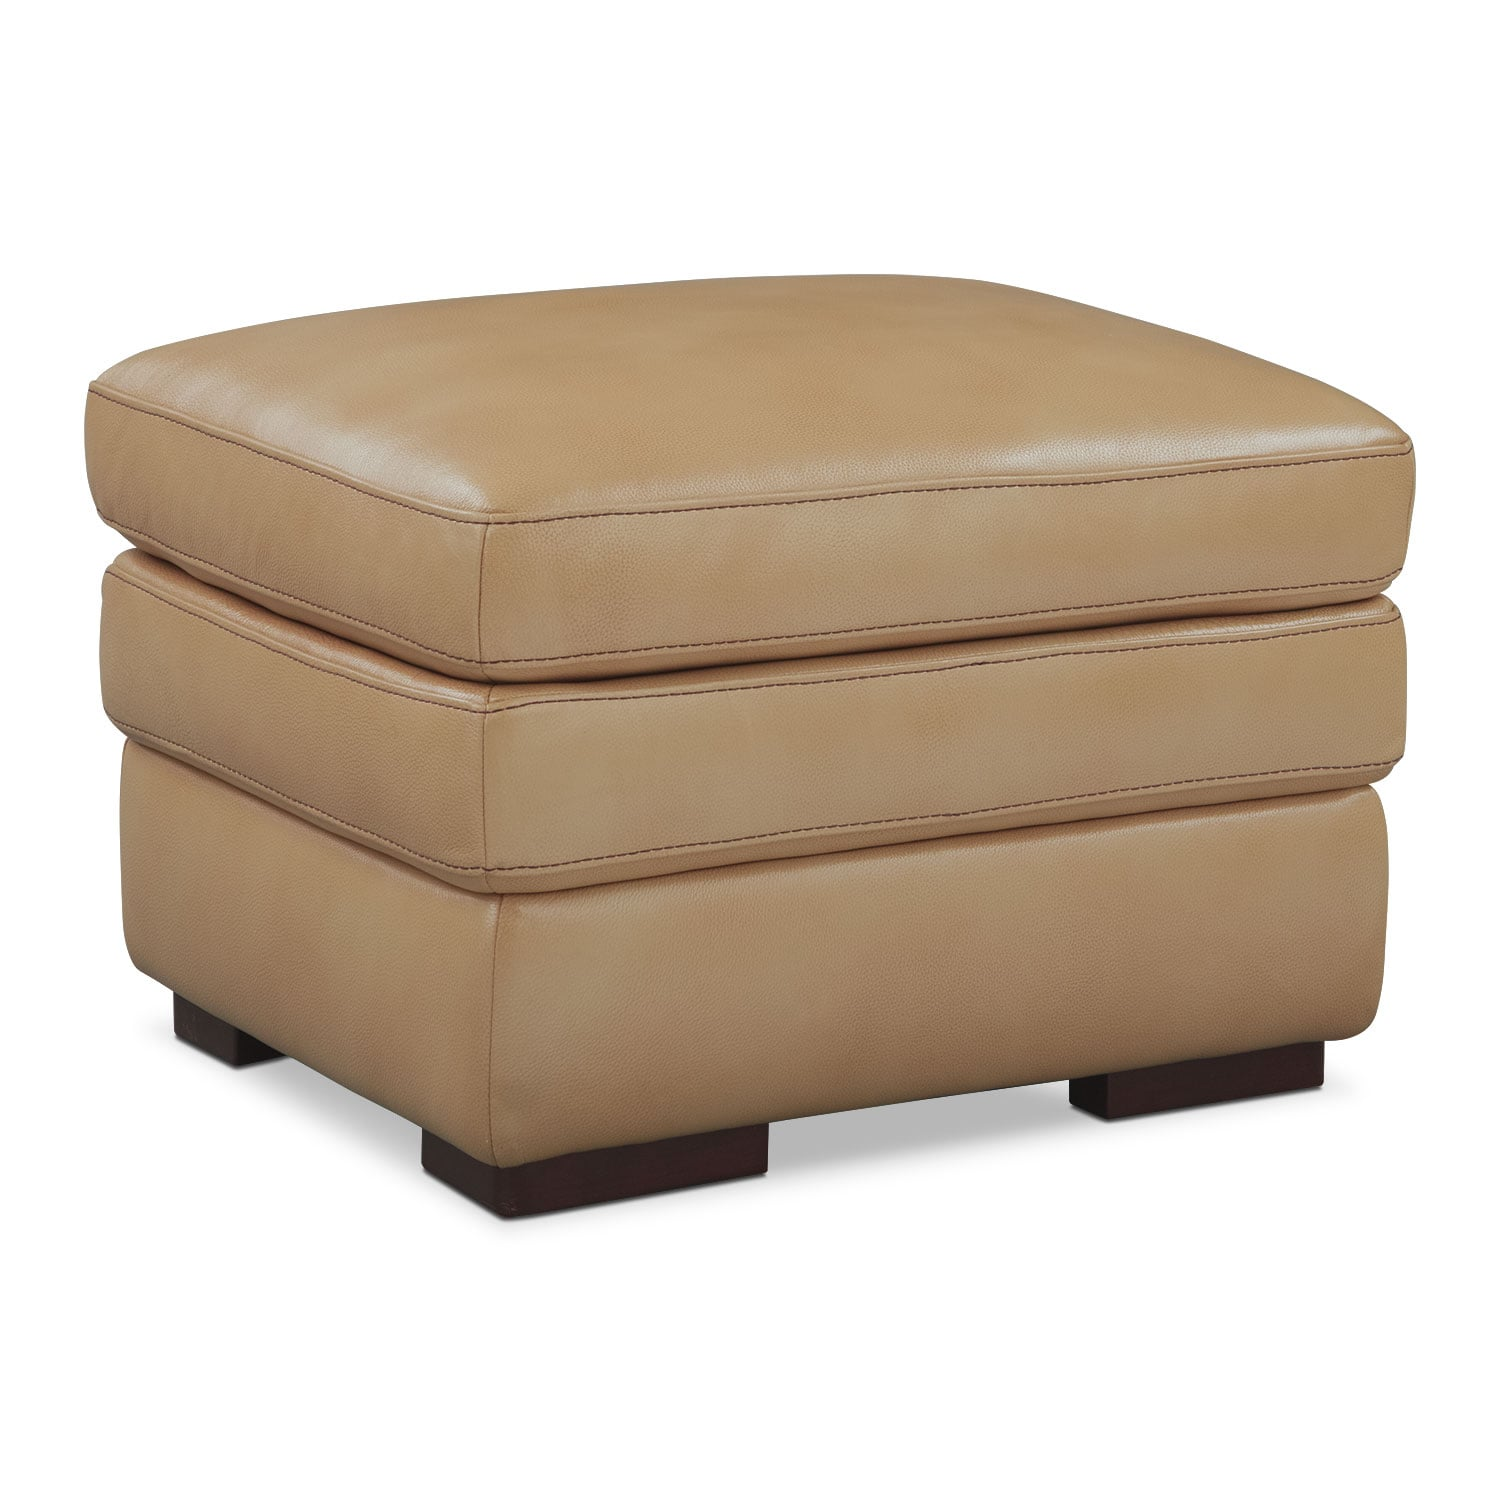 Living Room Furniture - Peyton Taupe Ottoman